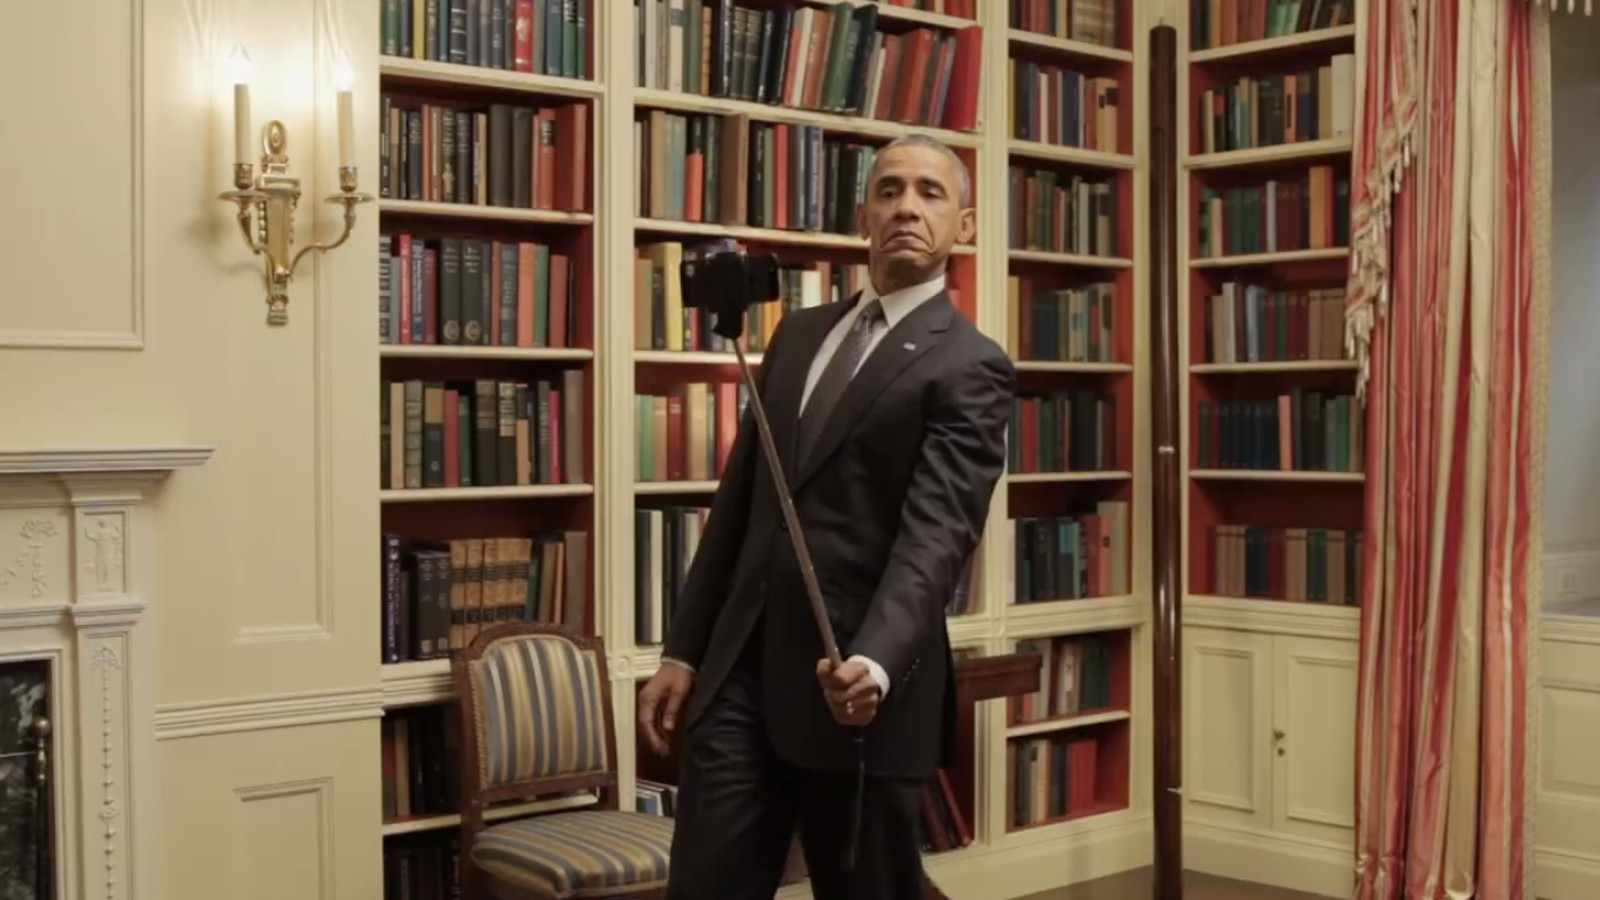 Here S A Video Of Obama Using A Selfie Stick The Verge